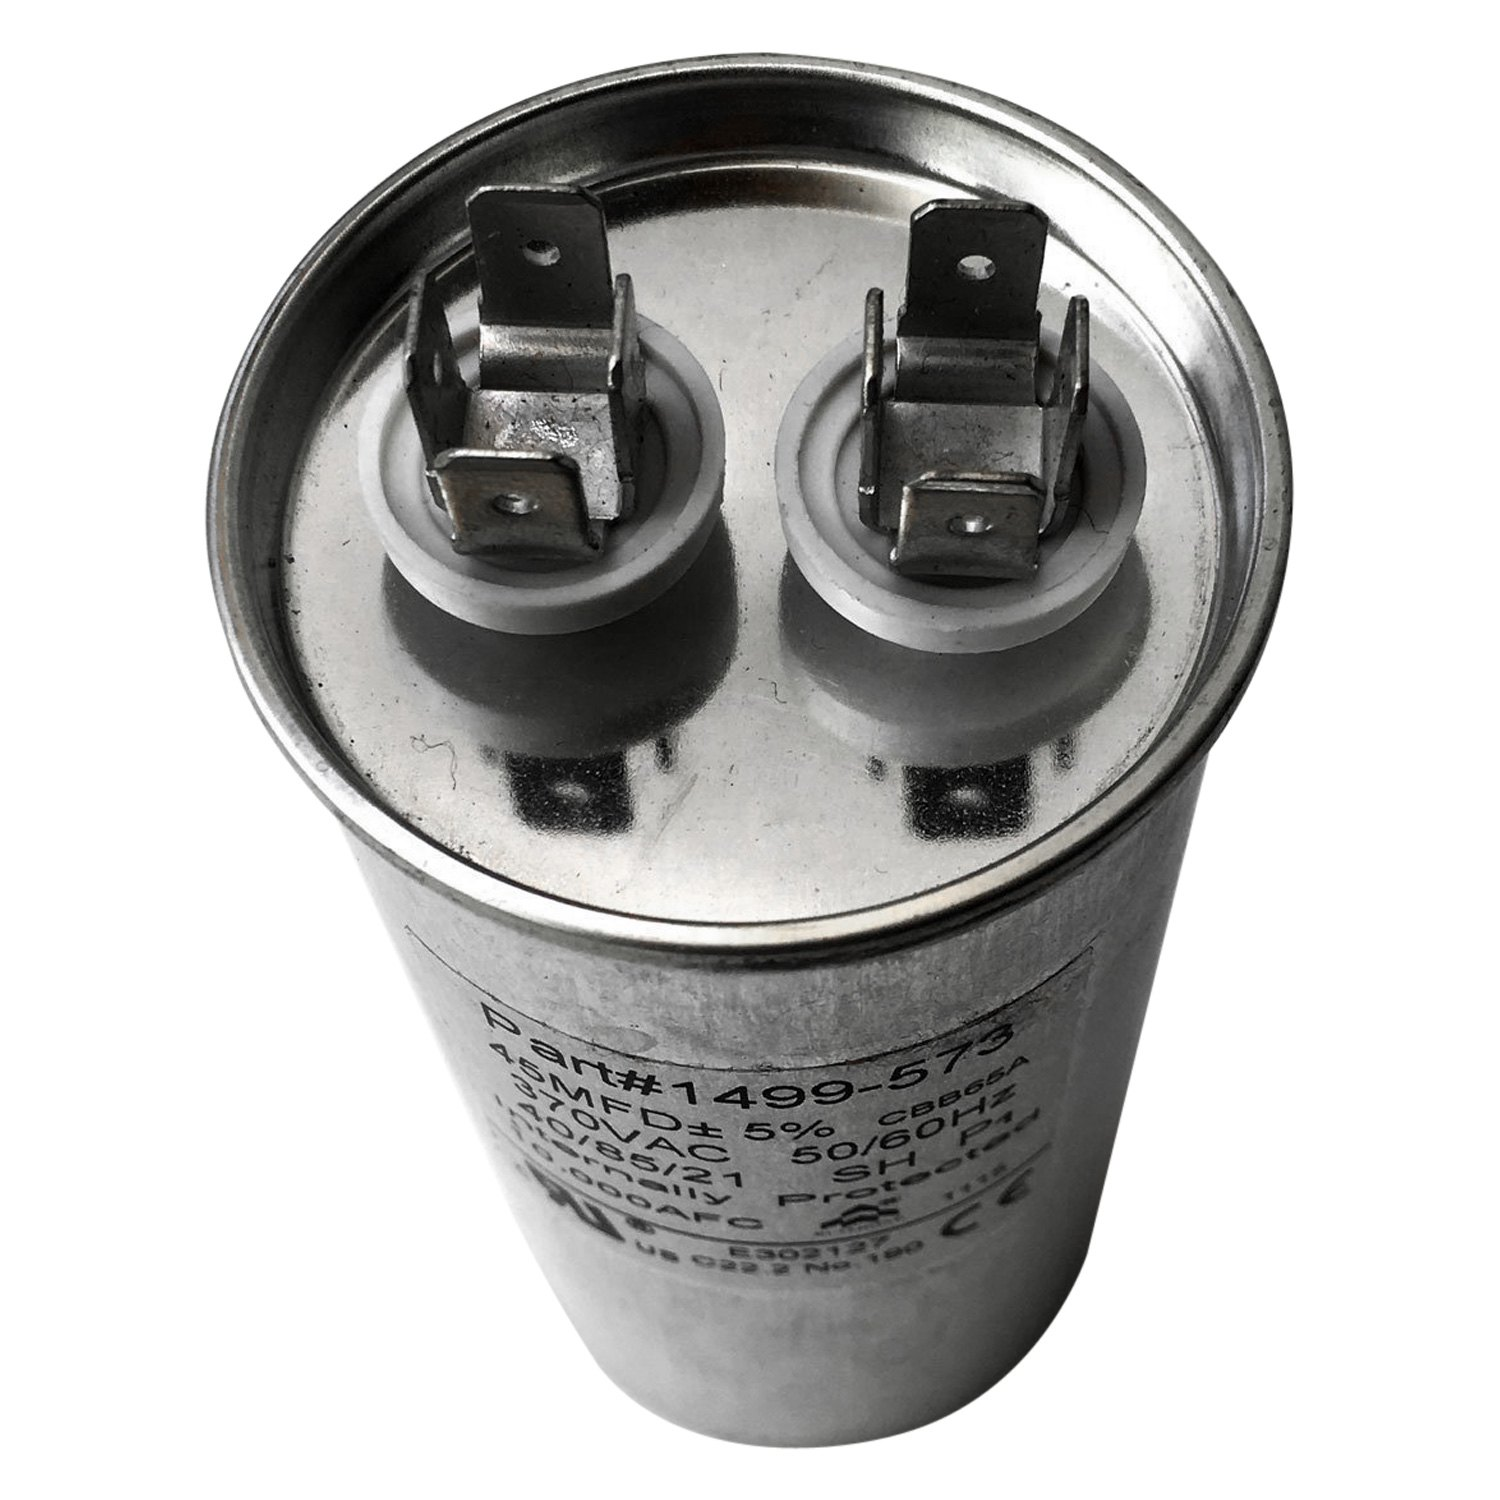 Air conditioner repair information questions and answers for Blower motor capacitor symptoms